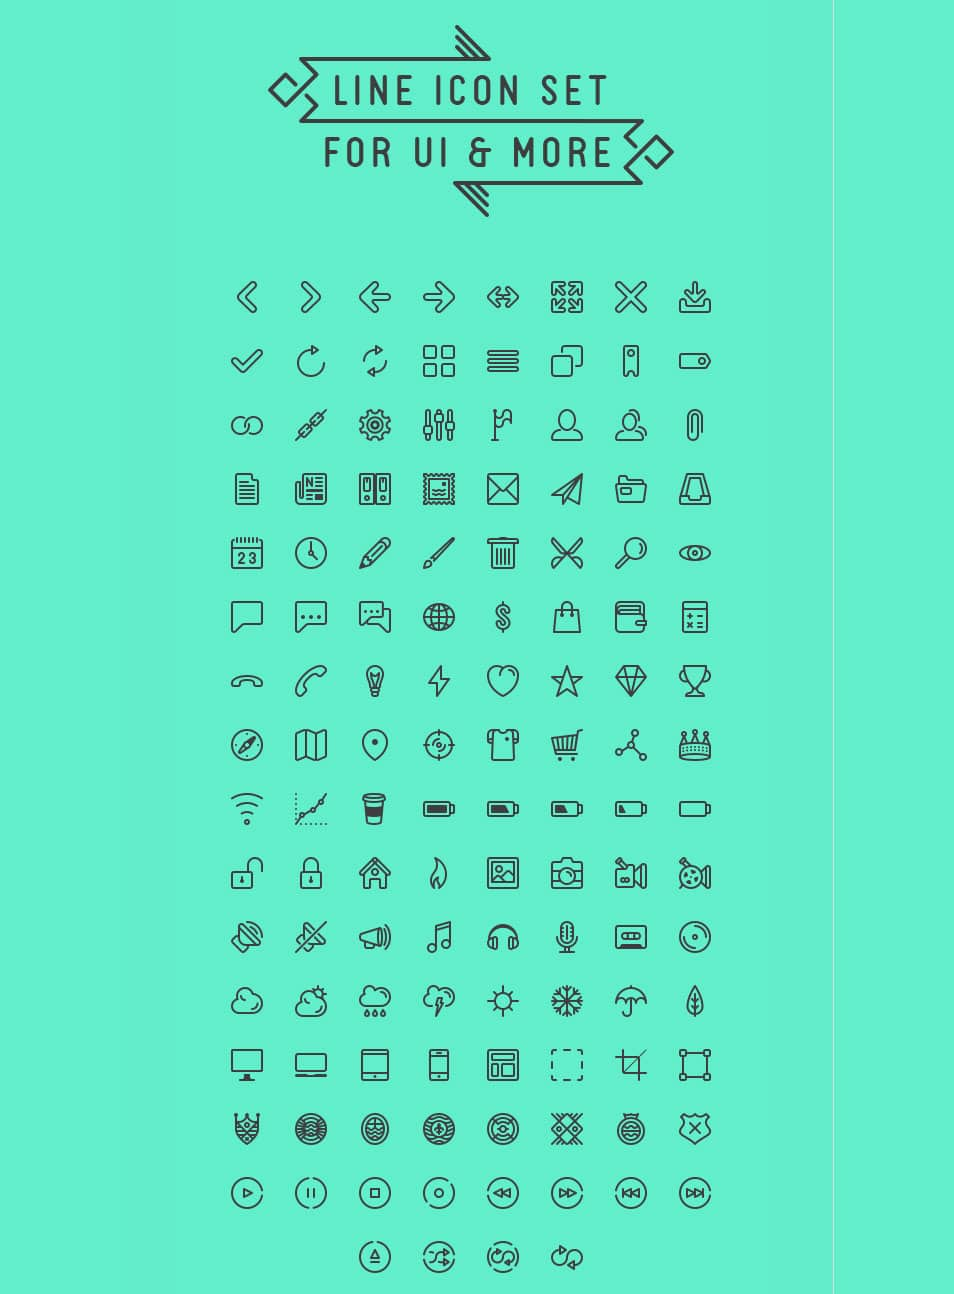 Line icon set for UI & more